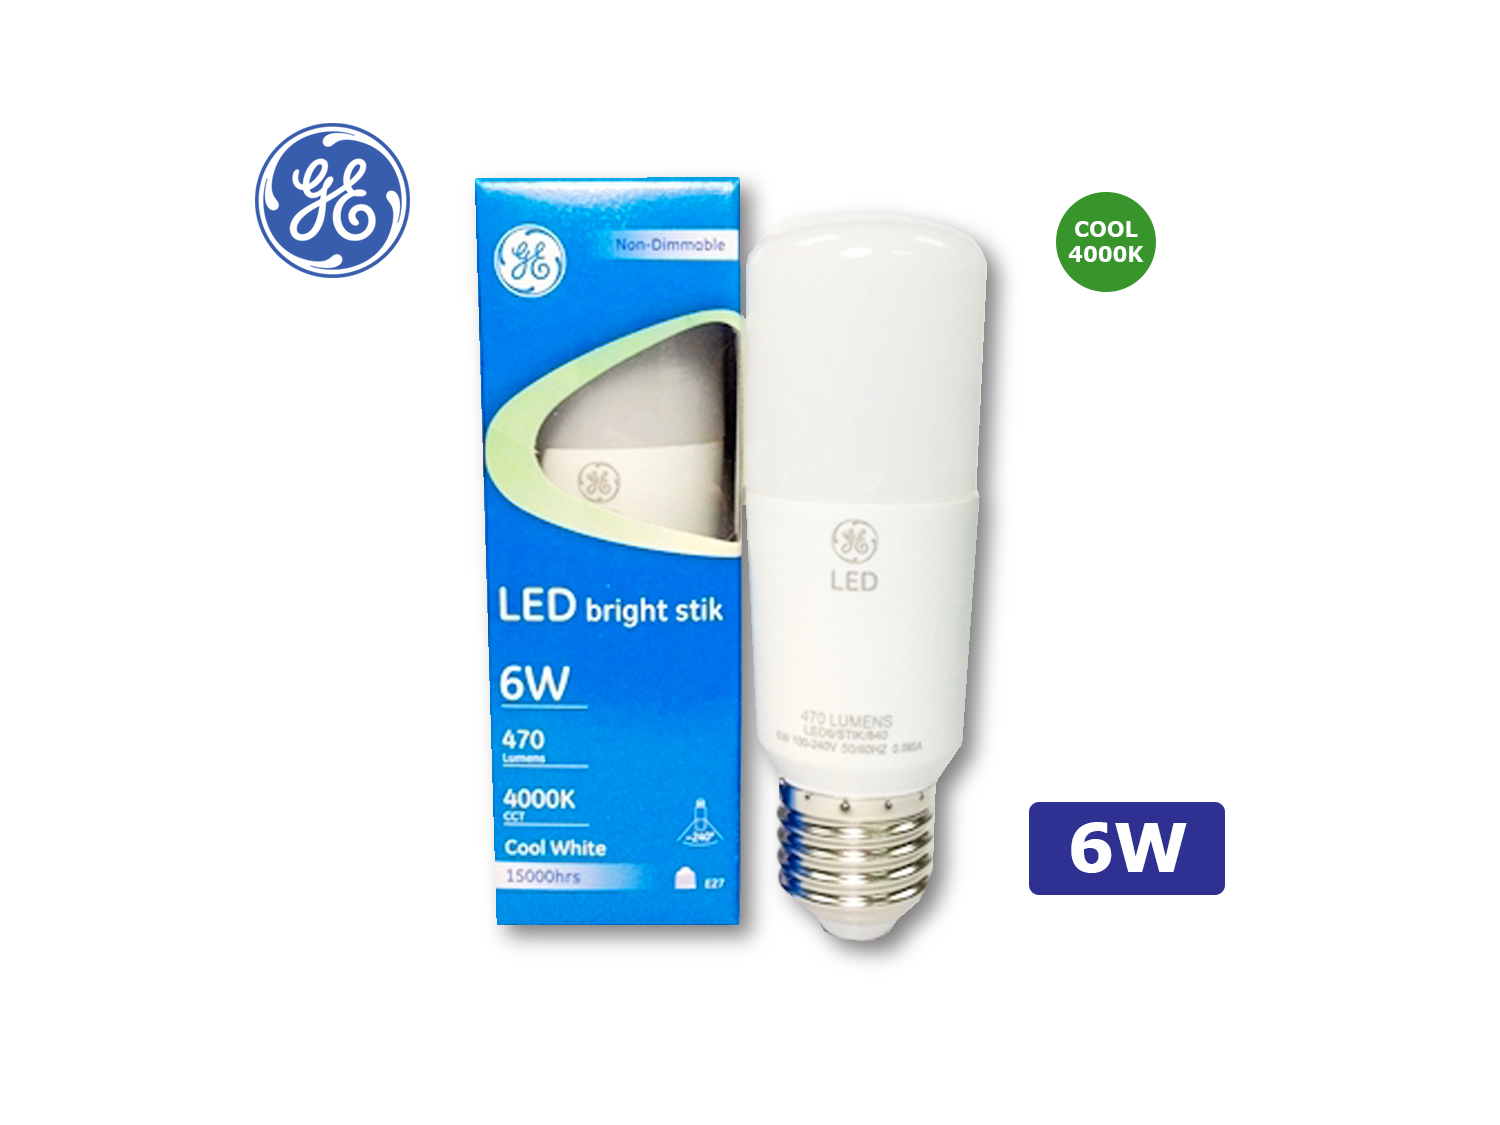 GE 6W/LED Brightstik E27/4000K(Cool White)/100-240V ; SKU: 74352T, LED6/STIK/840/100-240V/E27/G2